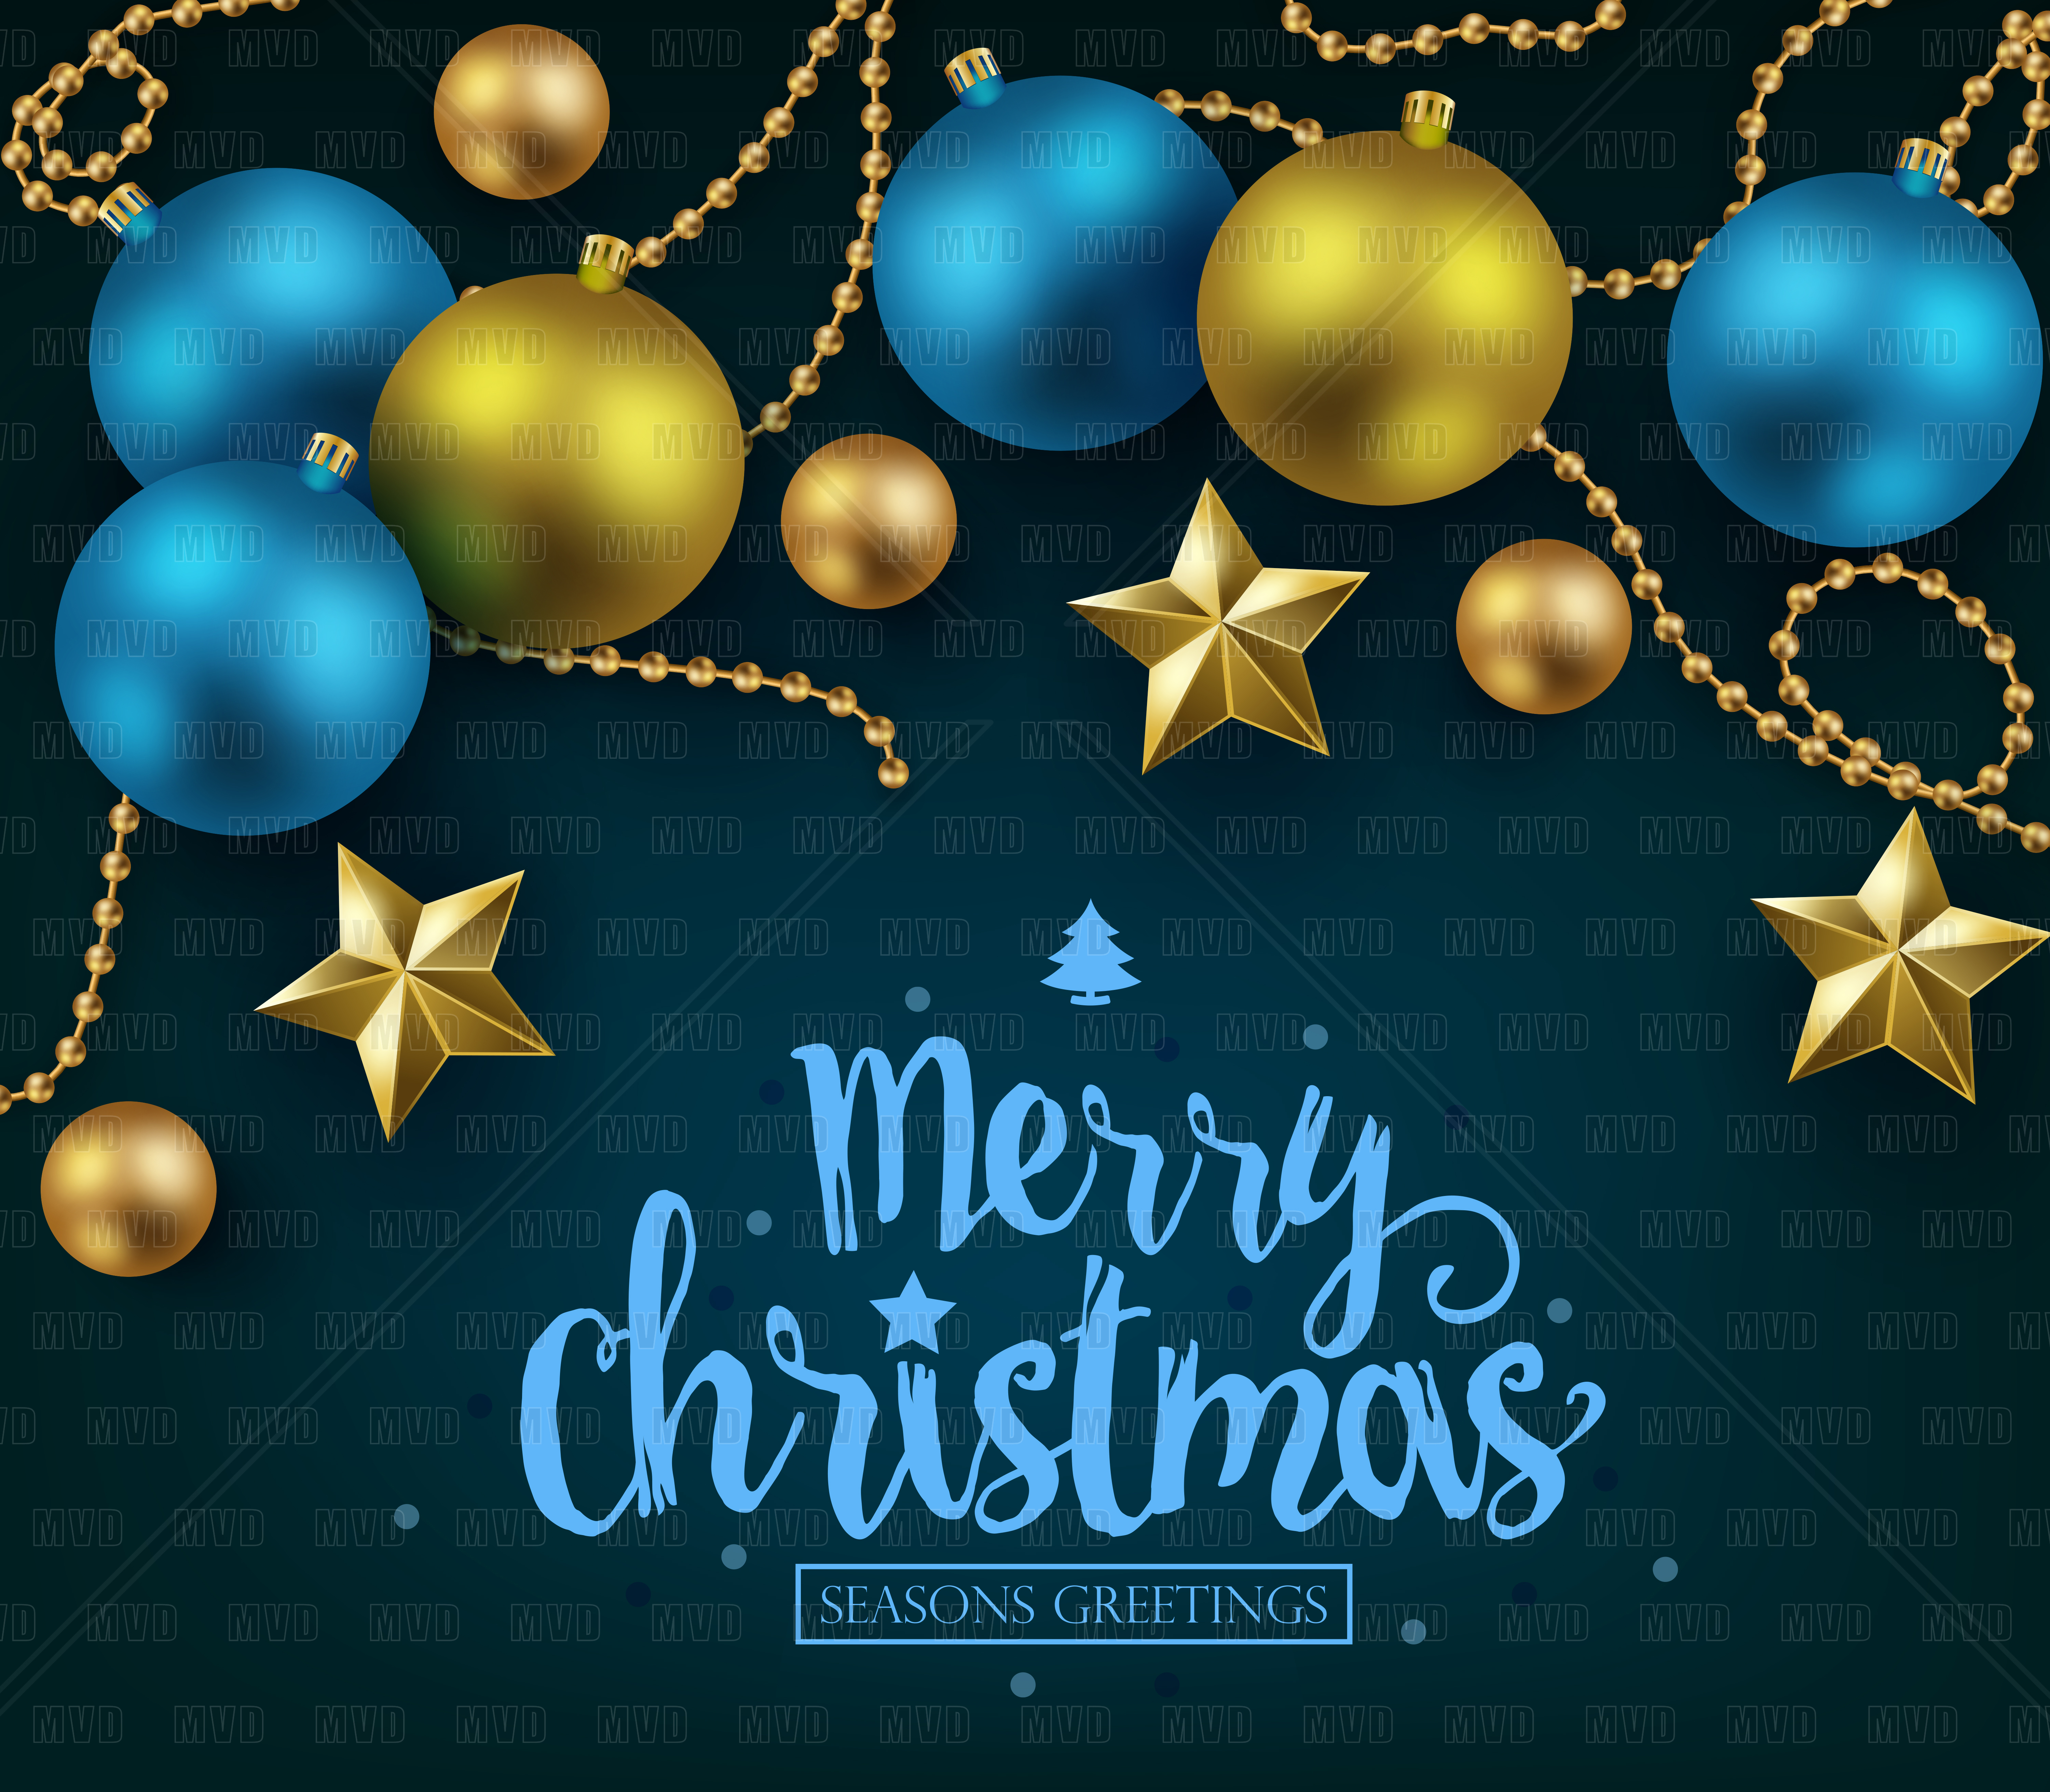 Merry christmas and happy new year typo design bundles merry christmas and happy new year typography on blue background example image 1 kristyandbryce Choice Image